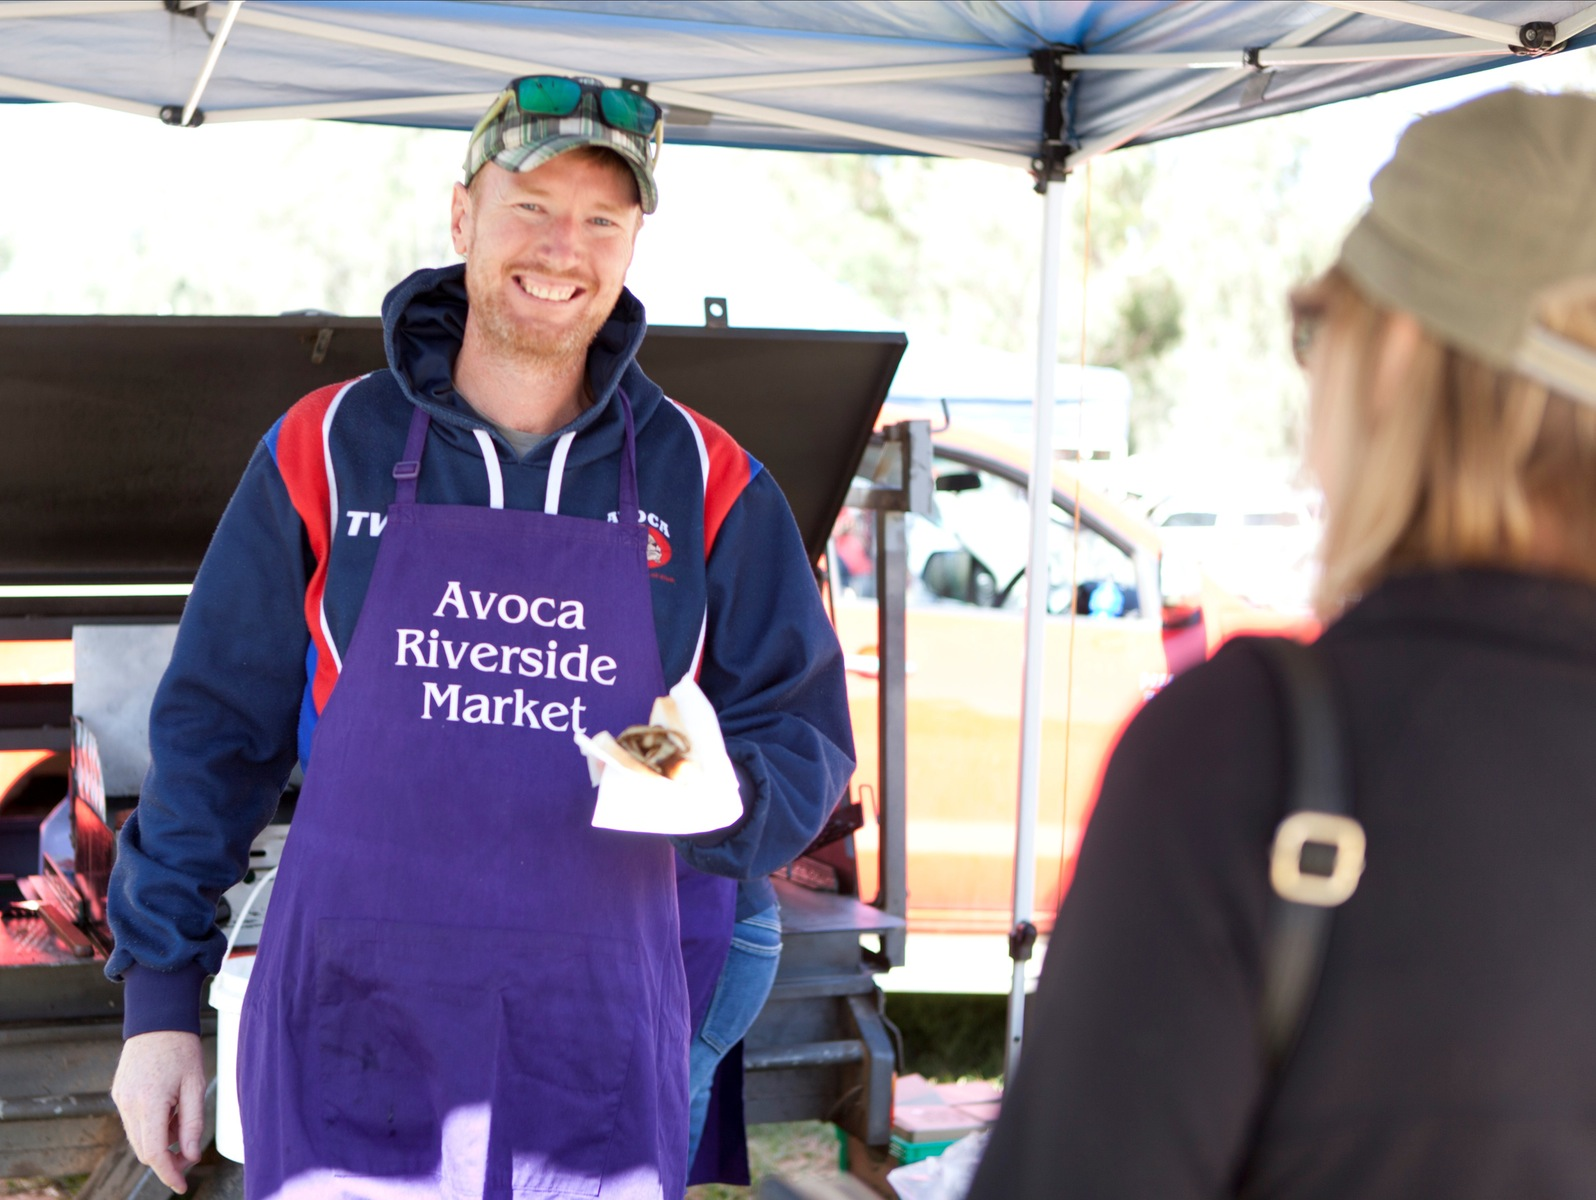 BBQ at Avoca Riverside Market